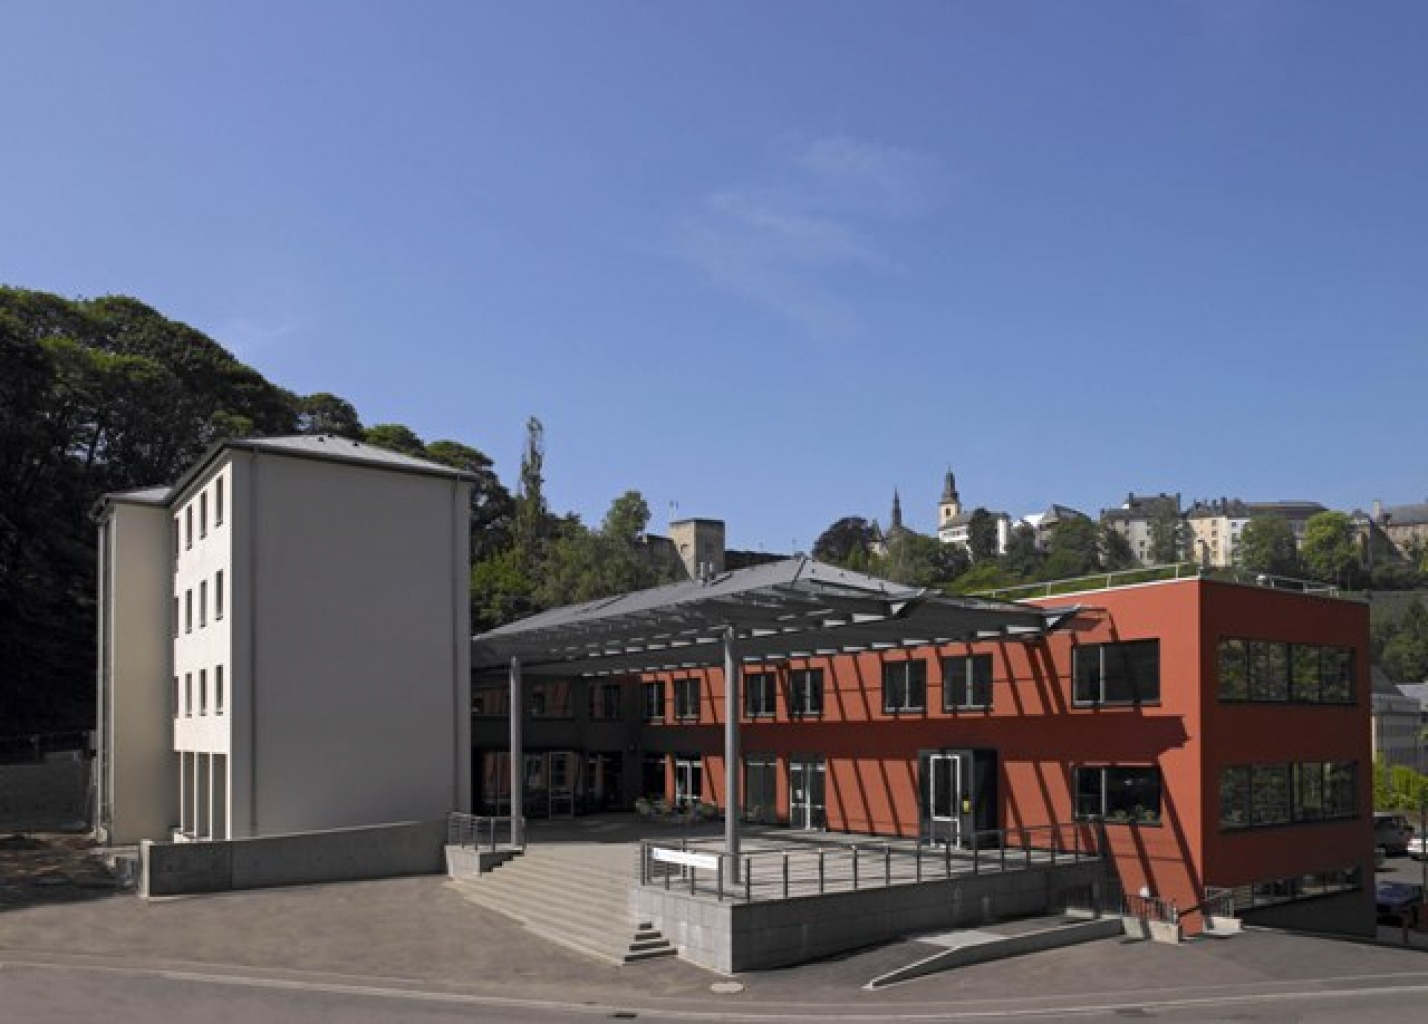 Youth hostel in luxembourg city youth hostels luxembourg for Auberge de jeunesse la maison price